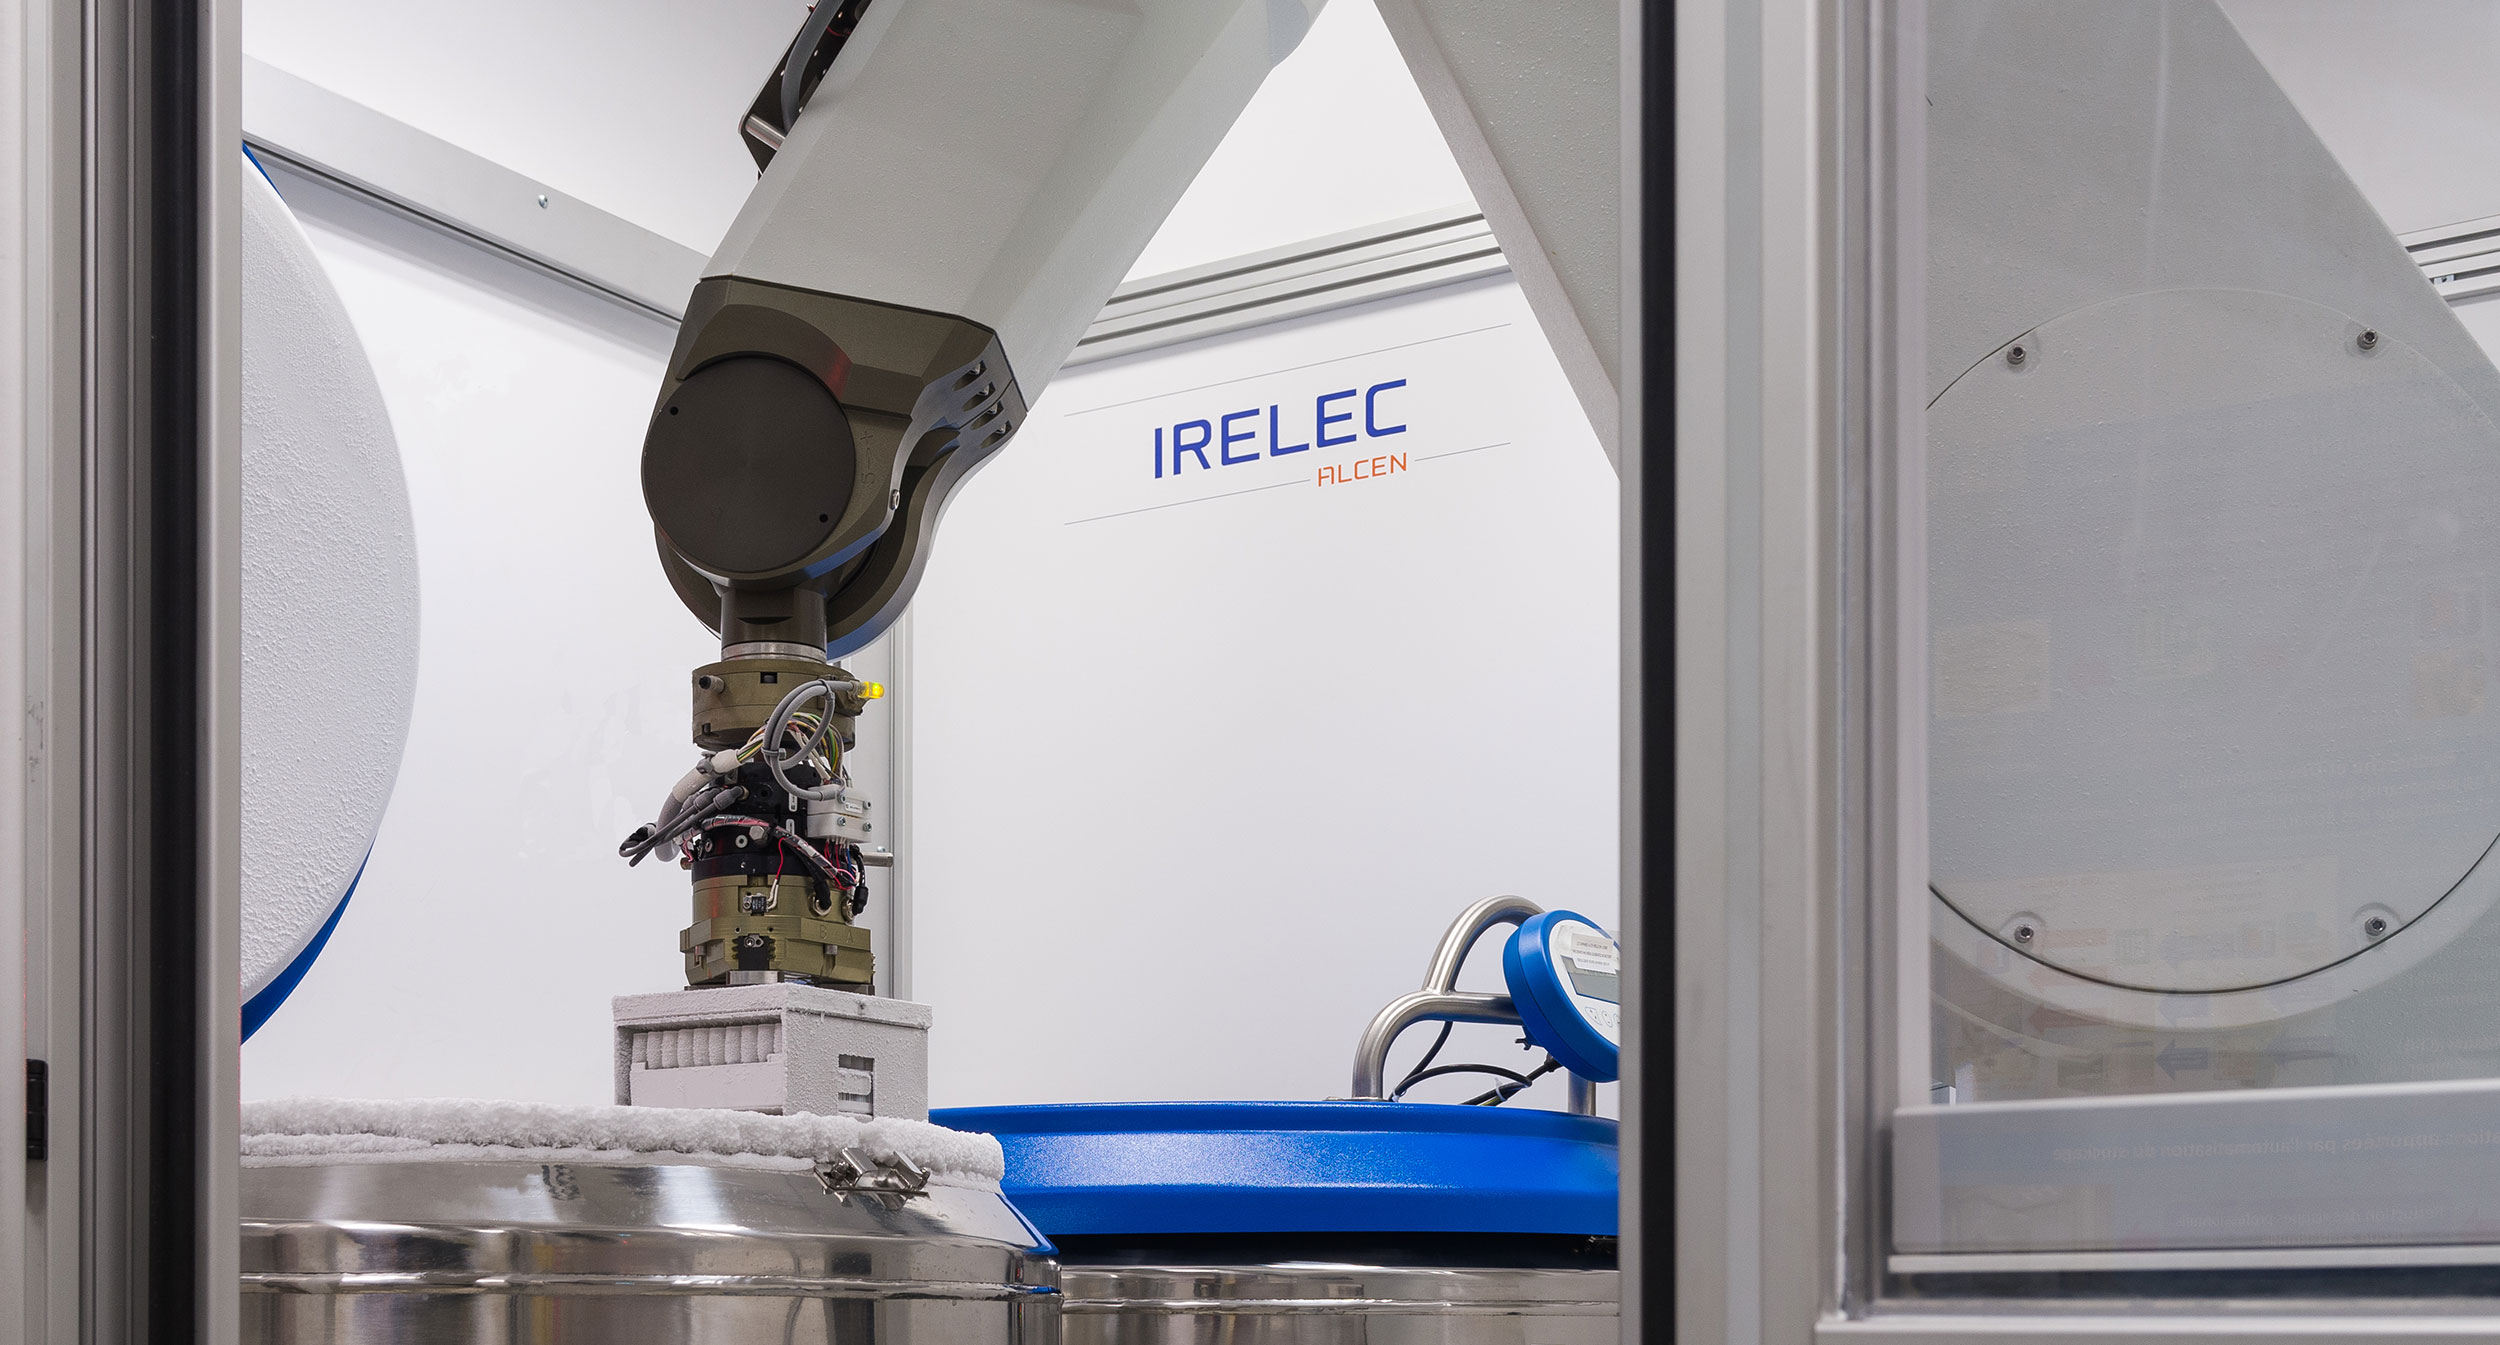 Robotic system for cryogenic biorepositories